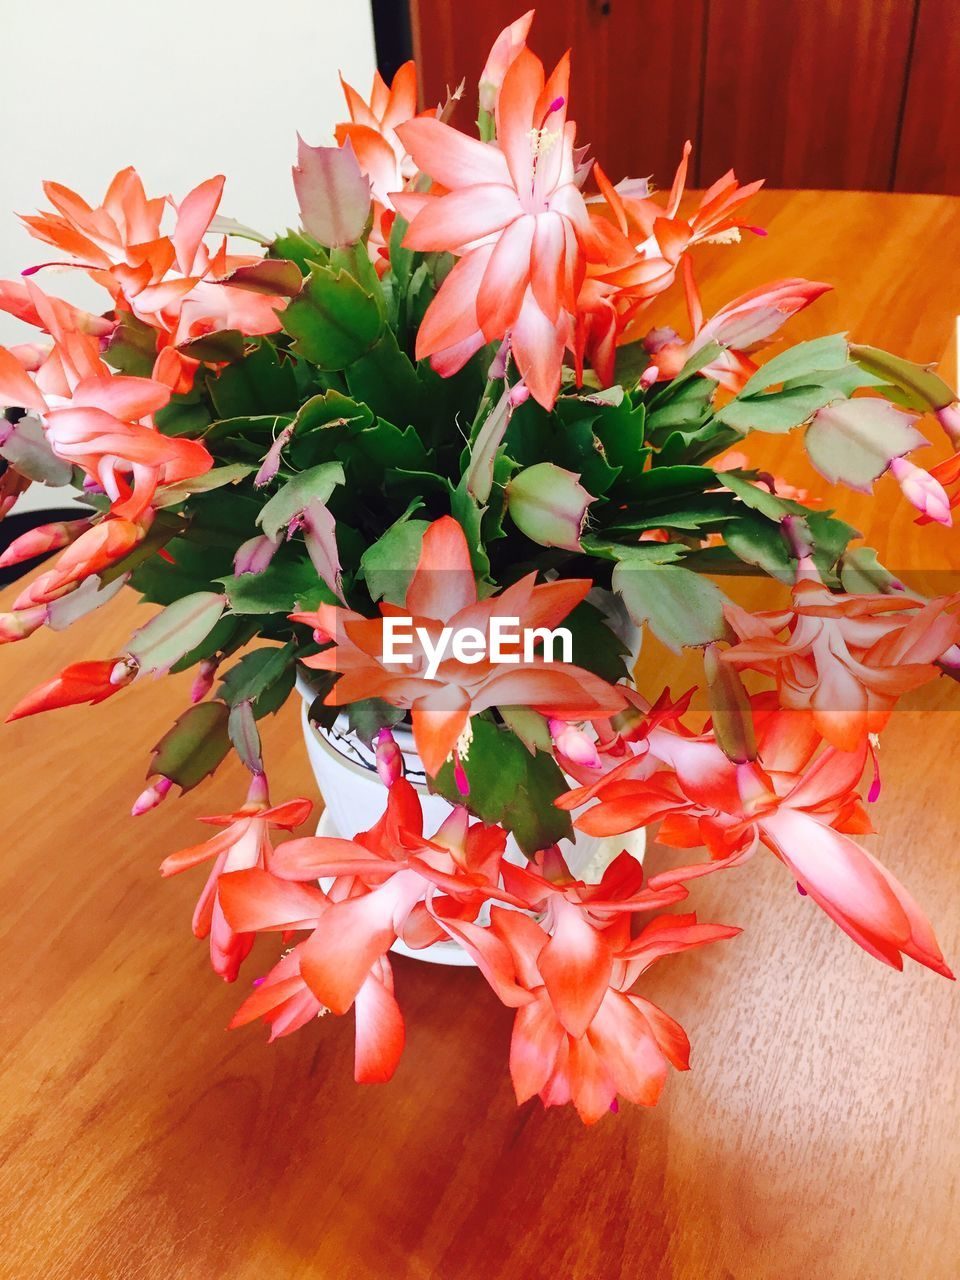 flower, orange color, petal, no people, close-up, indoors, flower head, freshness, fragility, table, beauty in nature, leaf, bouquet, nature, day